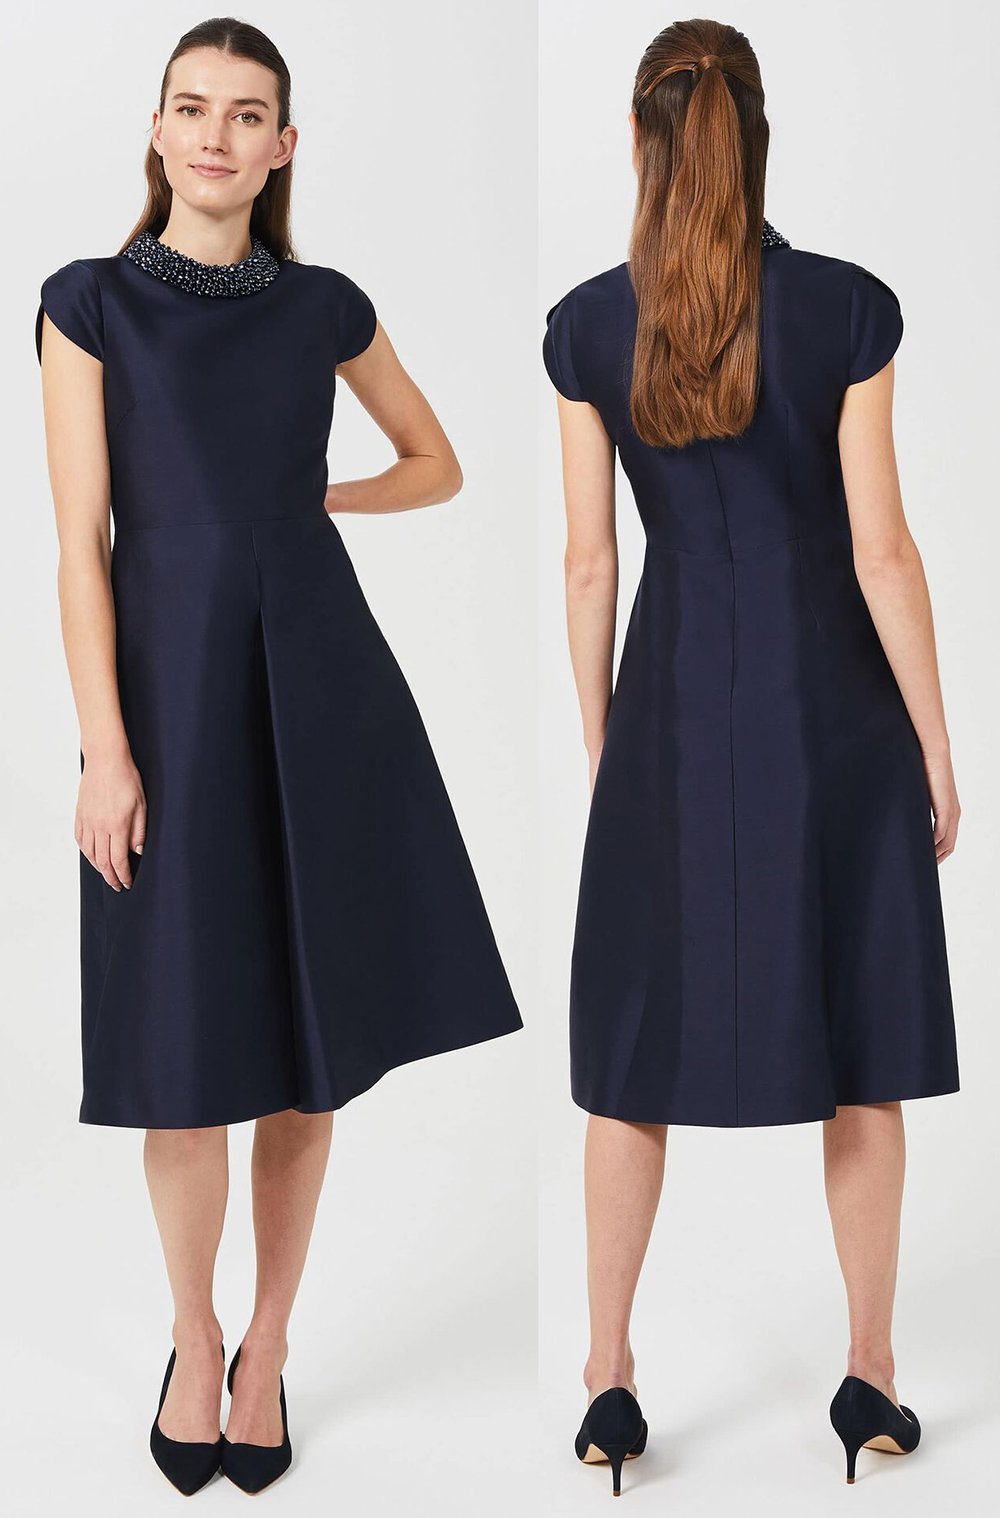 Mother of the Bride dress for Spring Wedding 2021. Navy Mother of the Bride Dress 2021. Navy Mother of the Groom Dress 2021. What to wear for a Wedding 2021. Navy Mother of the Bride outfit 2021. Spring Mother of the Bride outfits 2021. Mother of the Groom Dresses 2021.